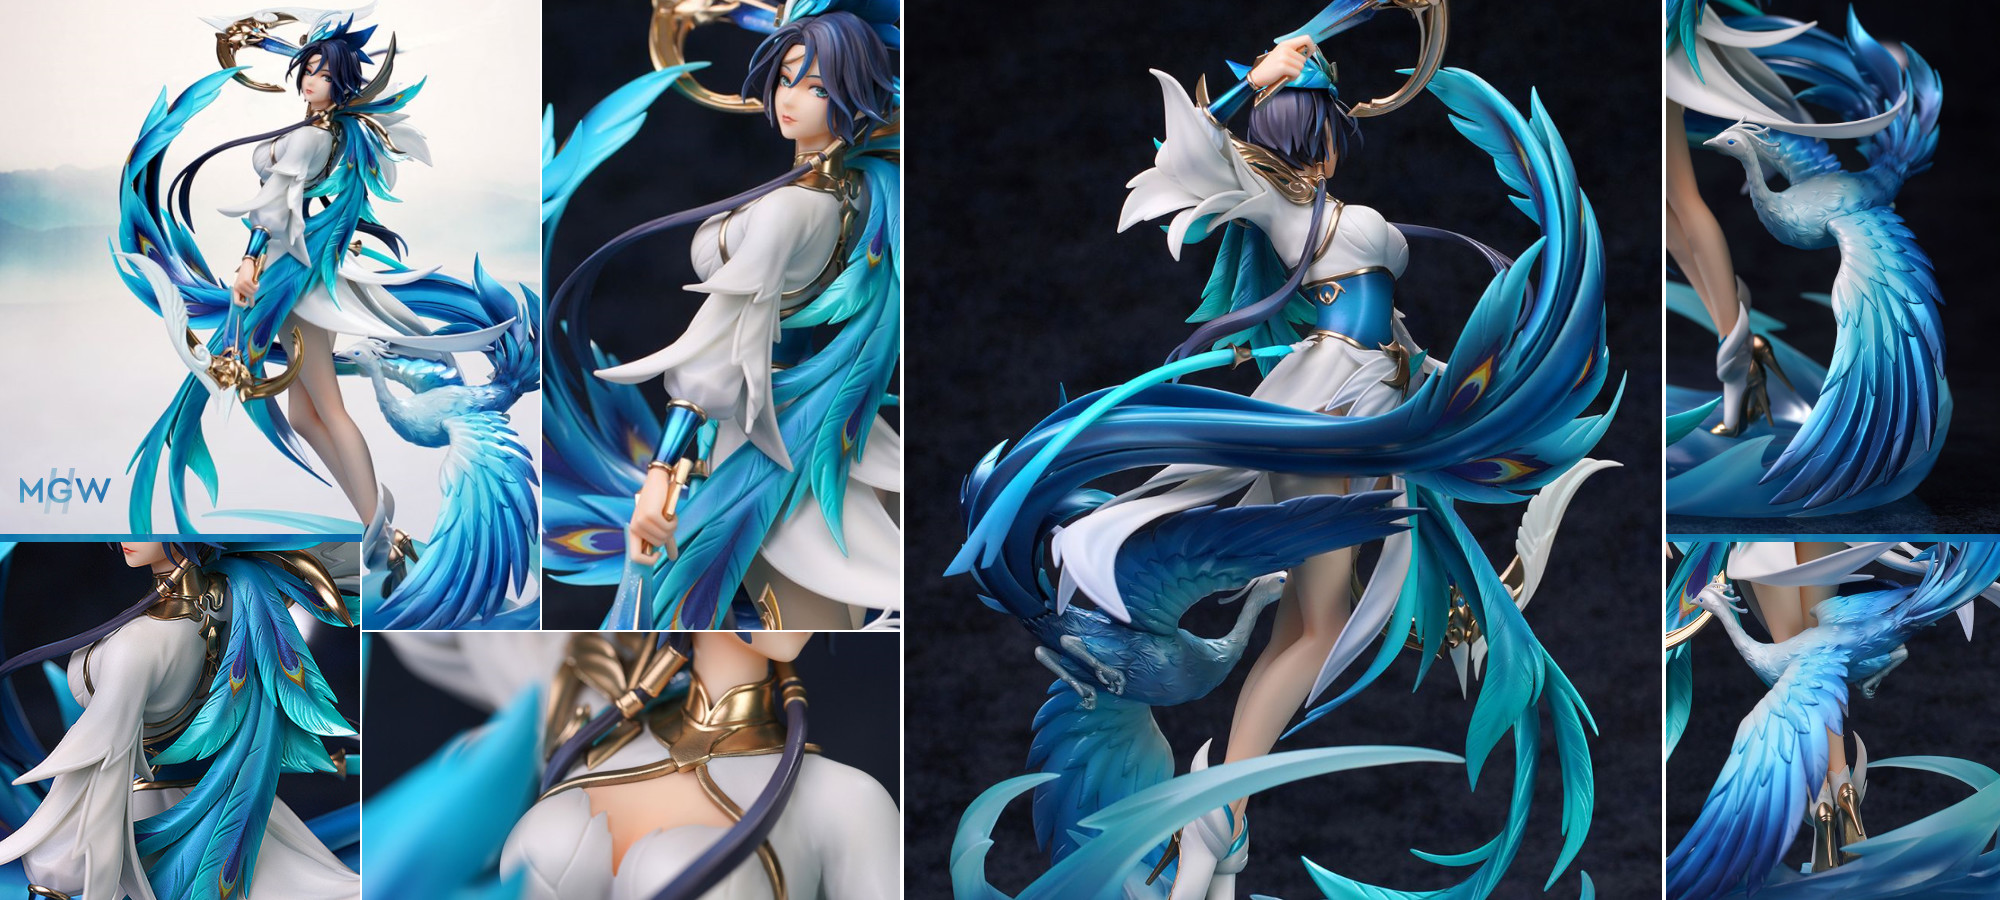 Consort Yu Yun Ni Que Ling Ver. by Myethos from Honor of Kings MyGrailWatch Anime Figure Guide